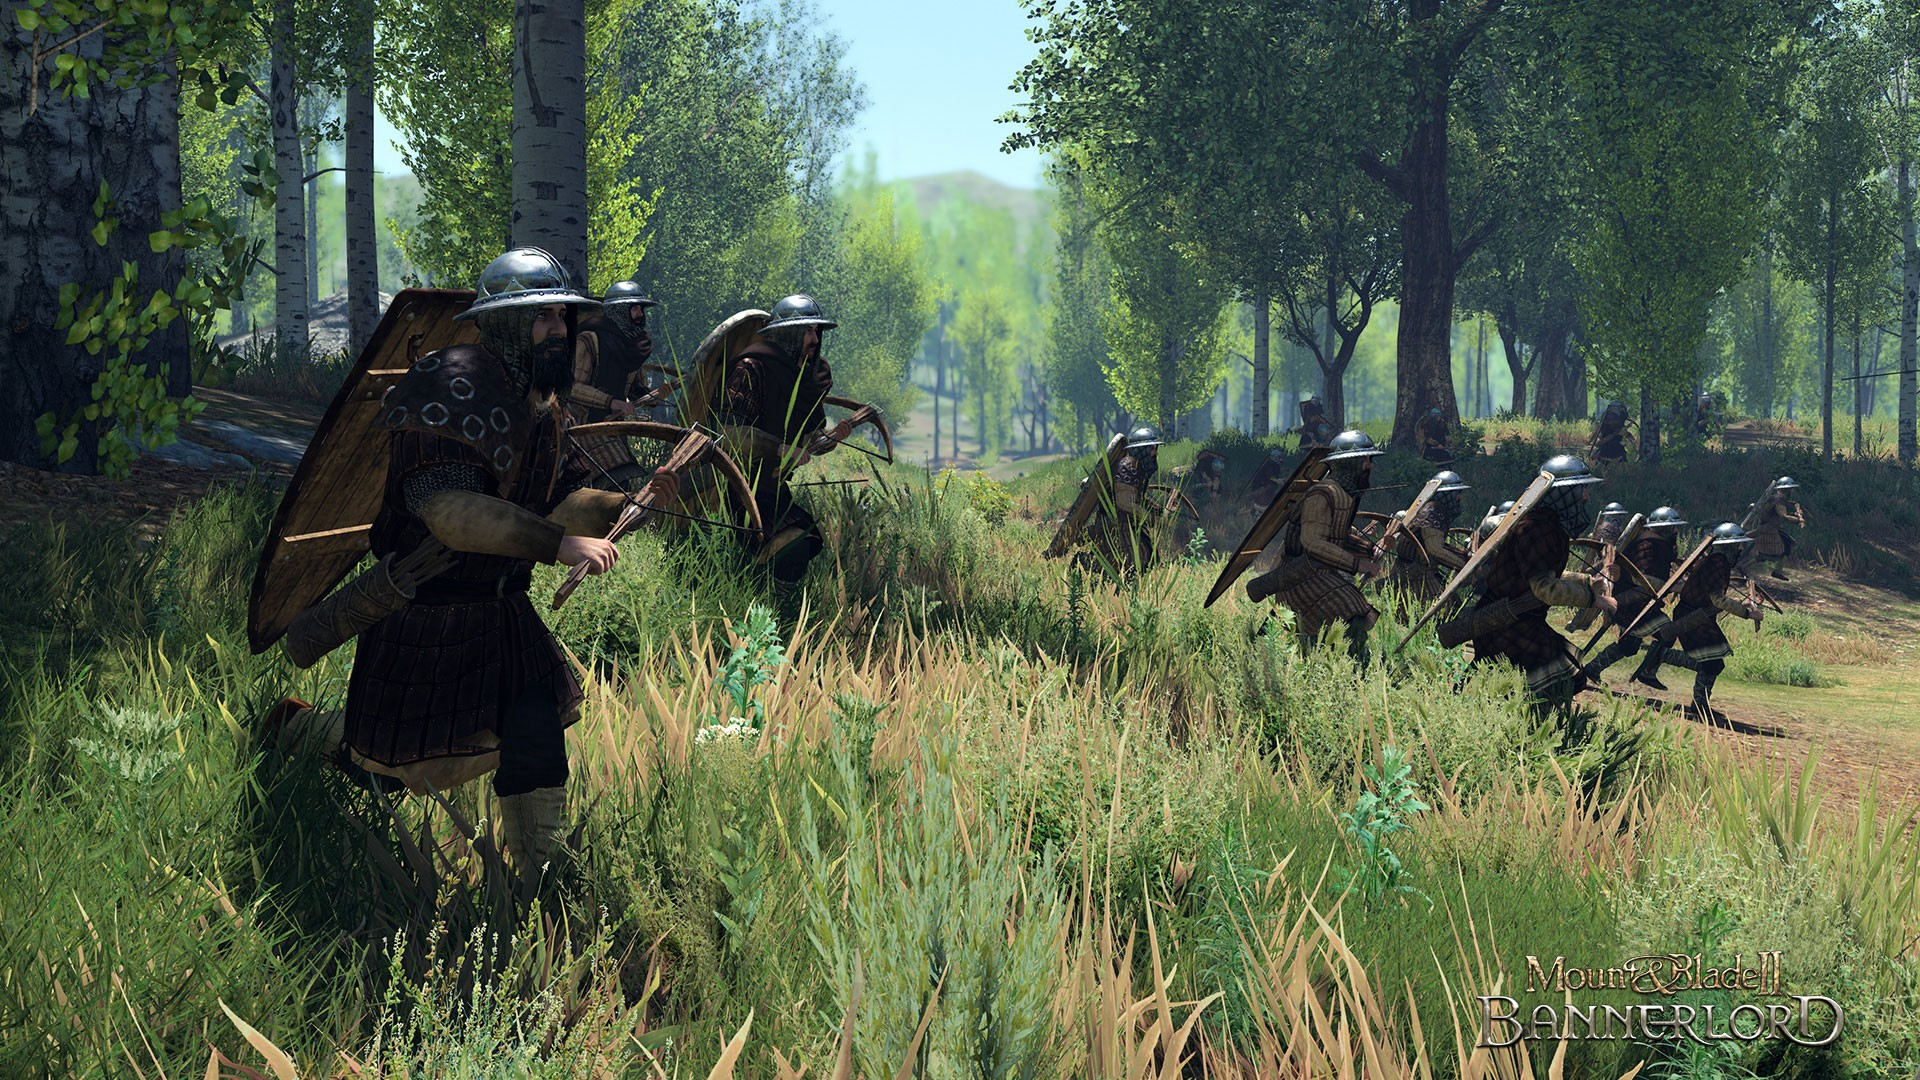 Action, Early Access, Medieval, Mount and Blade 2: Bannerlord, Mount and Blade 2: Bannerlord Review, open world, PC, PC Review, RPG, simulation, strategy, TaleWorlds Entertainment, War